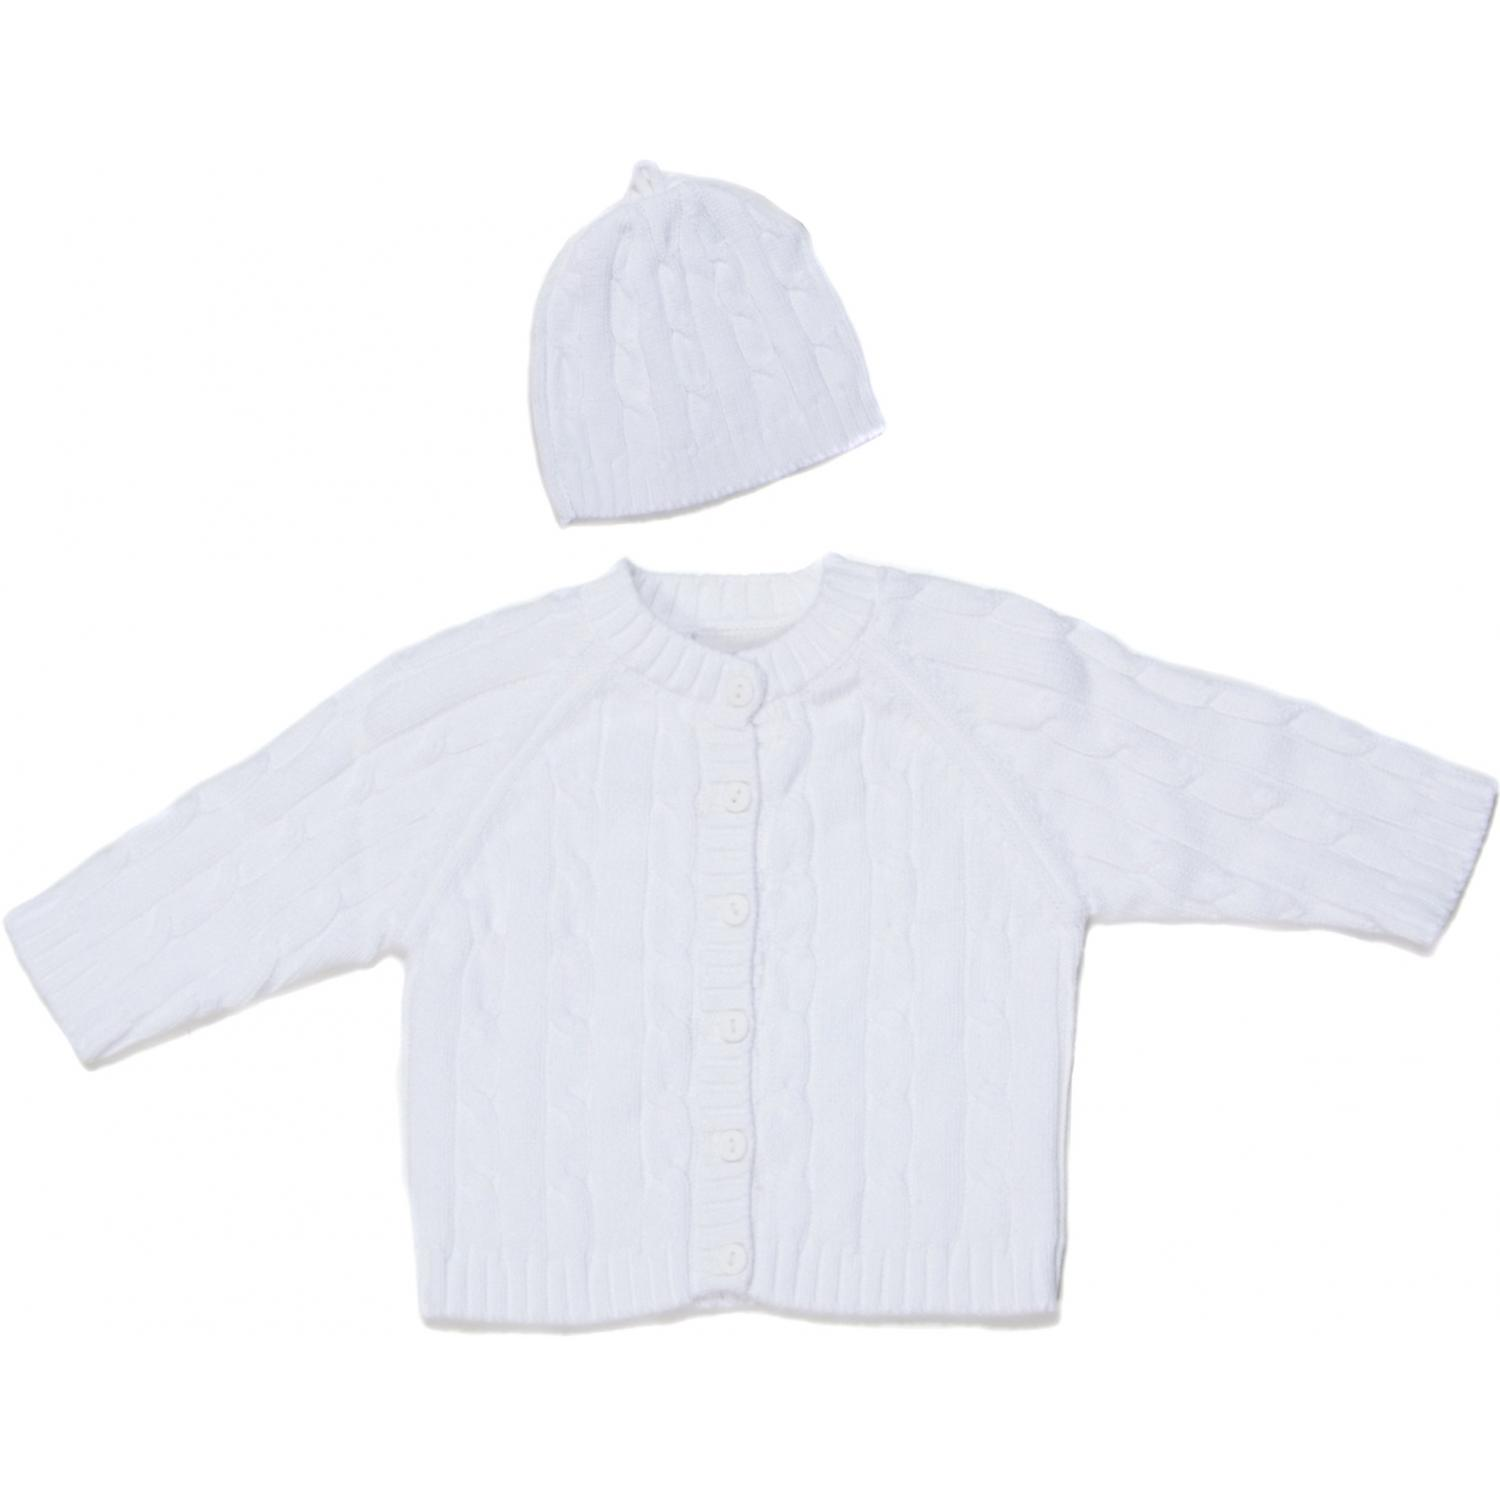 Elegant Baby Cable Knit Sweater Box Set 12 Months - White